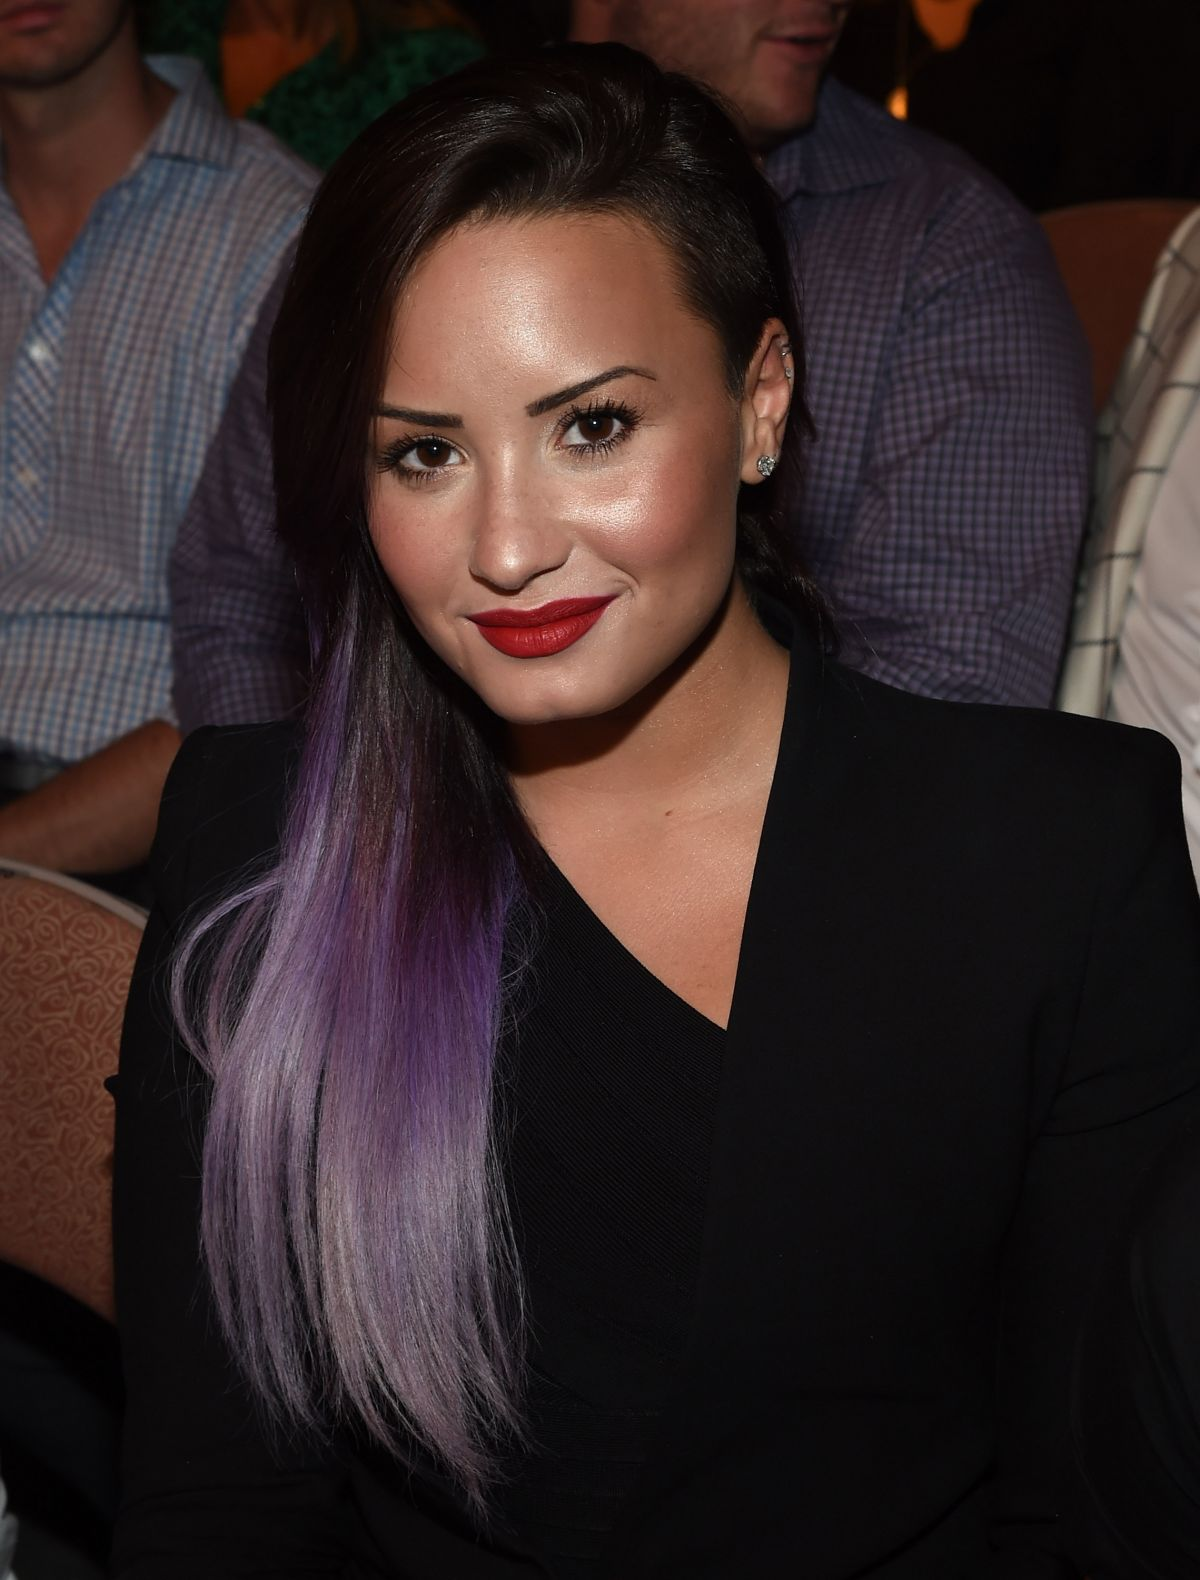 DEMI LOVATO at UFC 175, wWeidman vs Machida